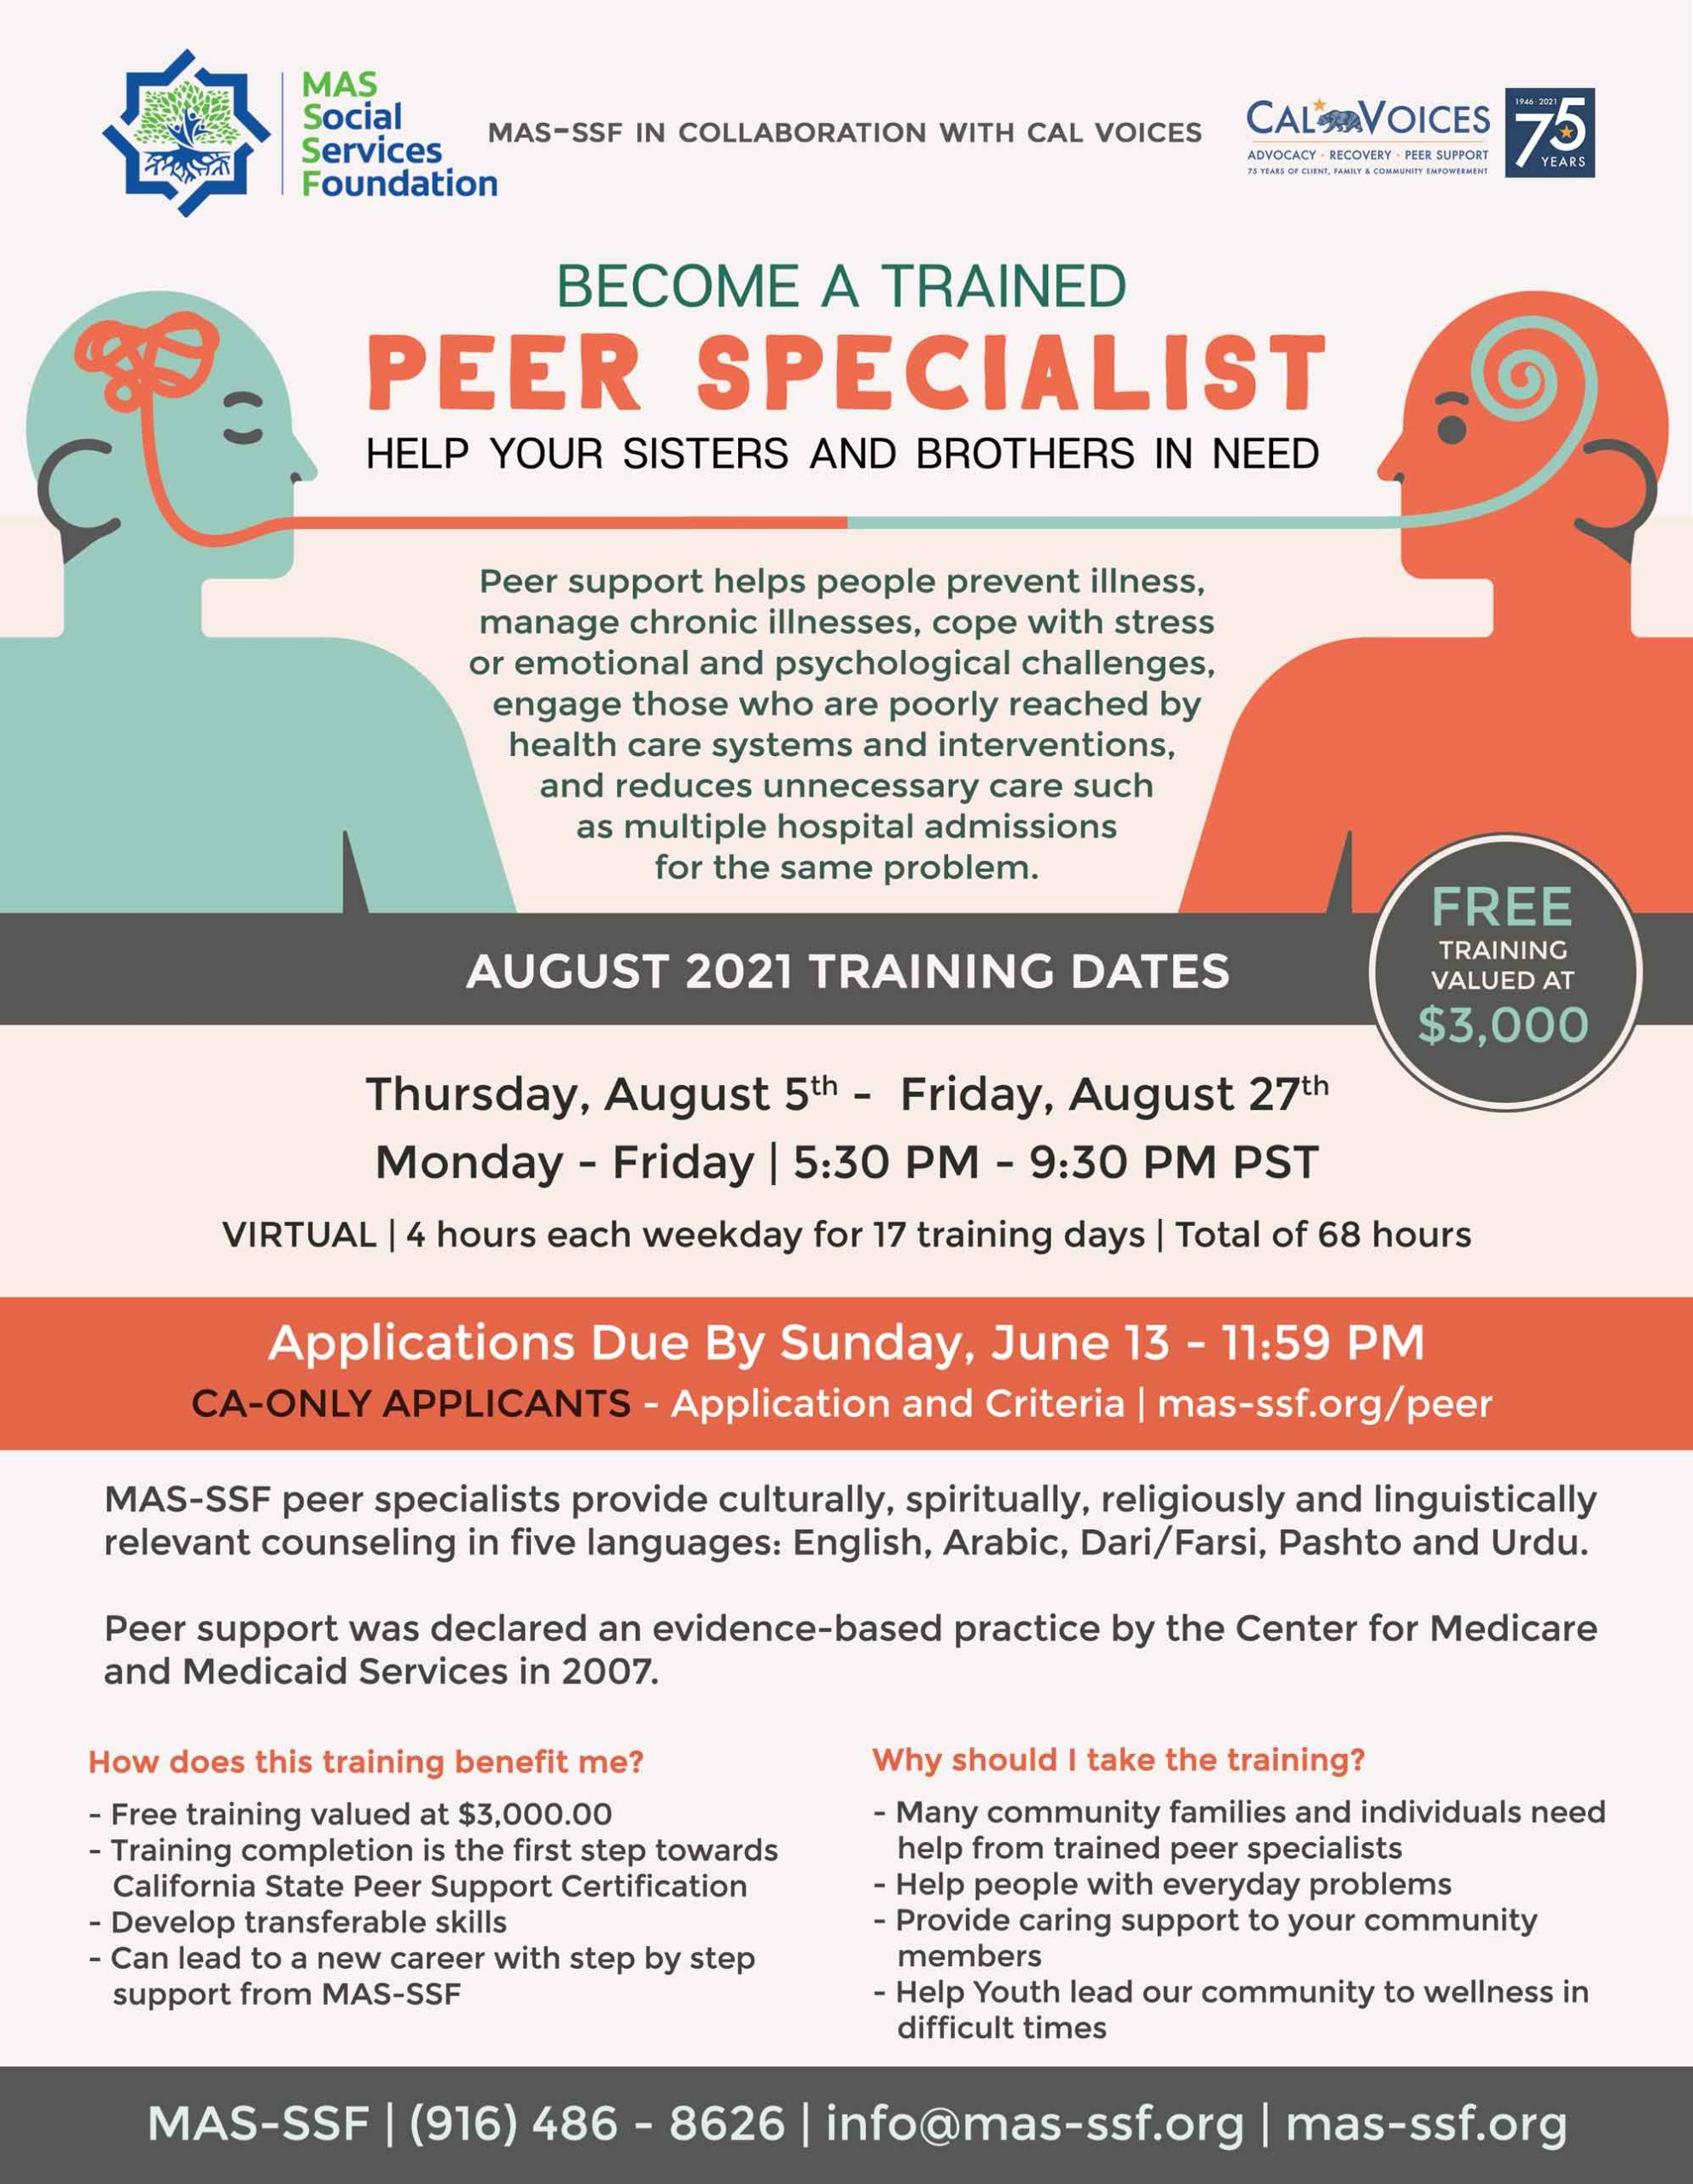 Become a trained peer specialist in California